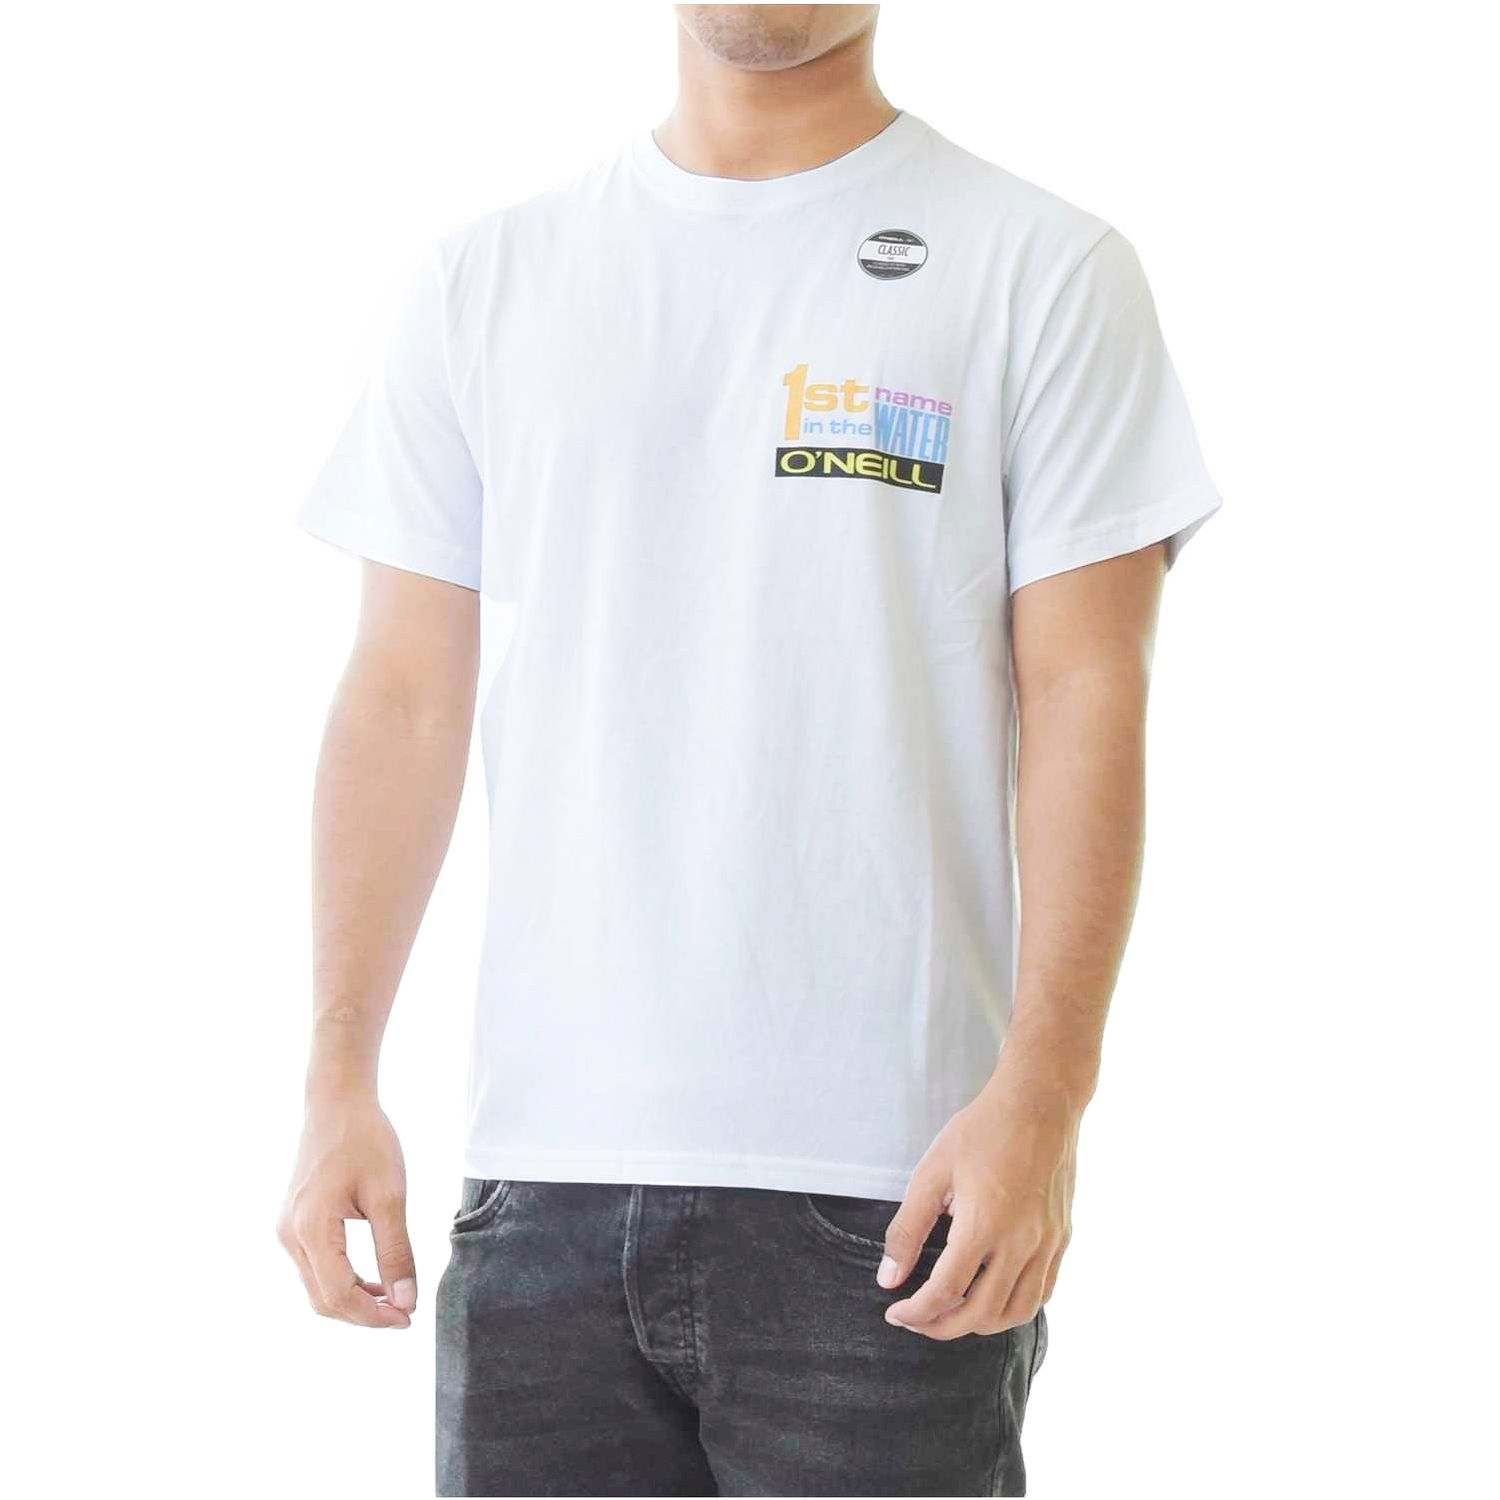 ONEILL lm 1st name t-shirt Blanco